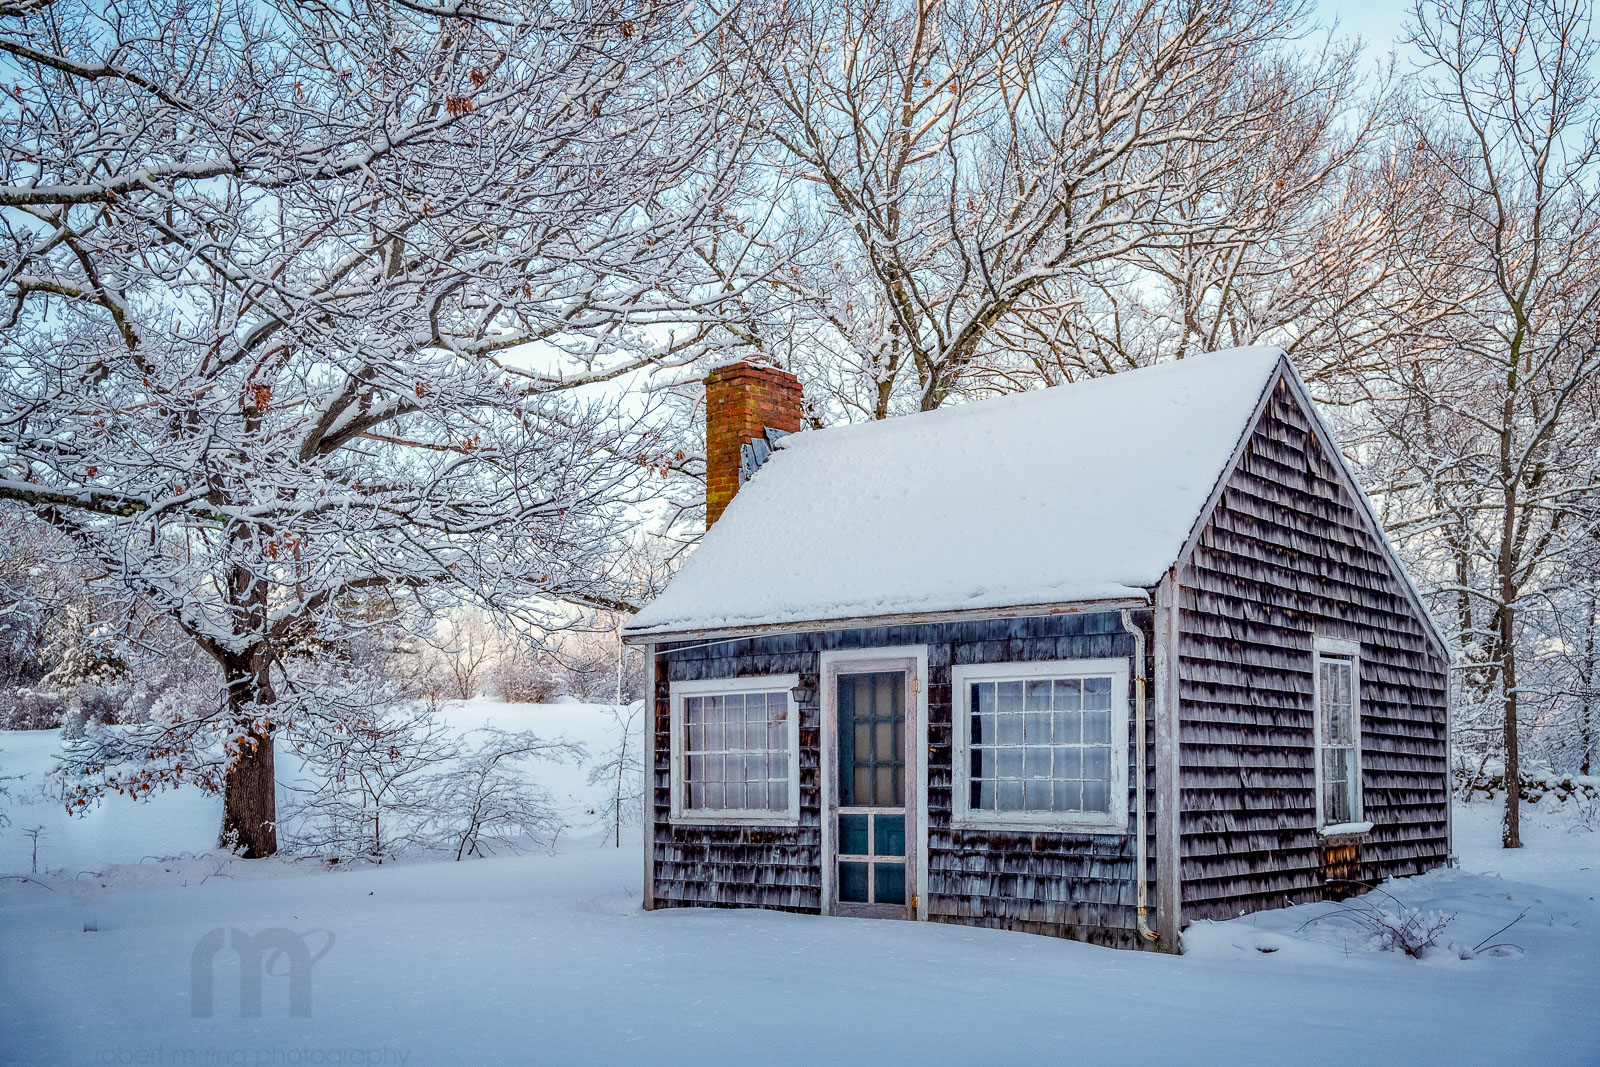 Byfield, Gardeners Shed, Snow,Winter, New England, photo